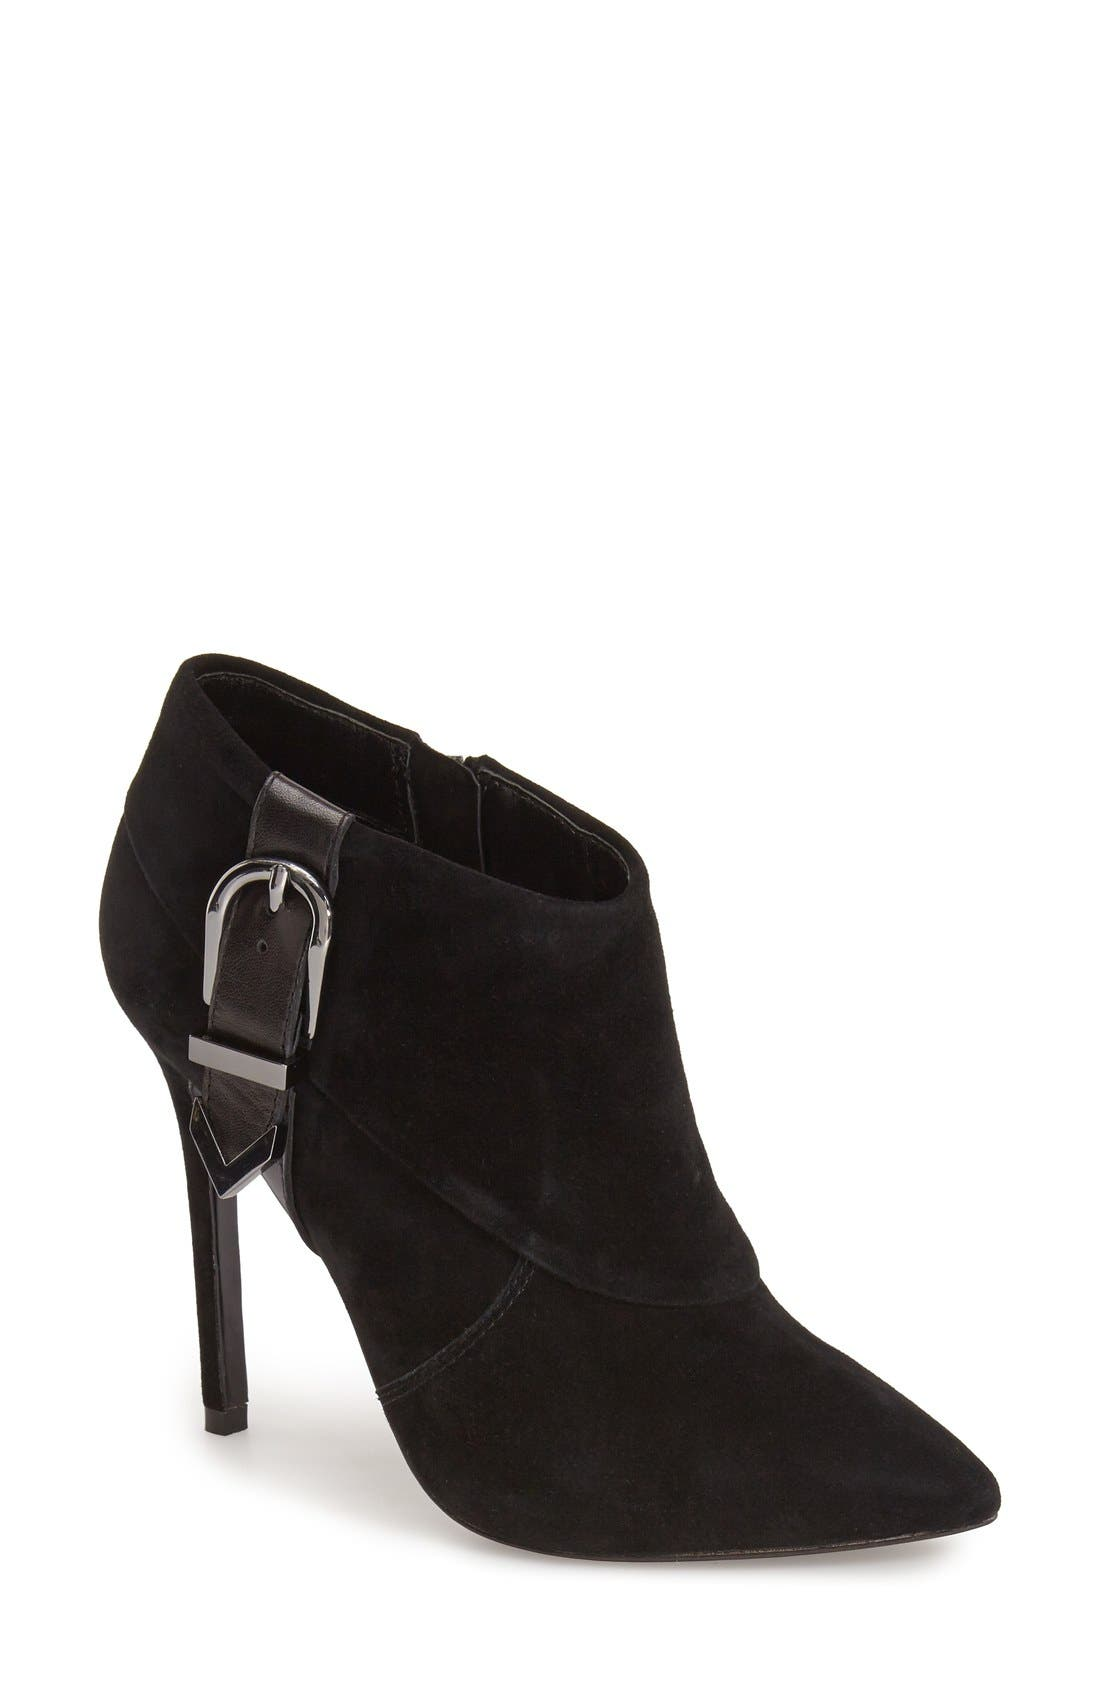 Main Image - Charles David 'Valle' Pointy Toe Bootie (Women)